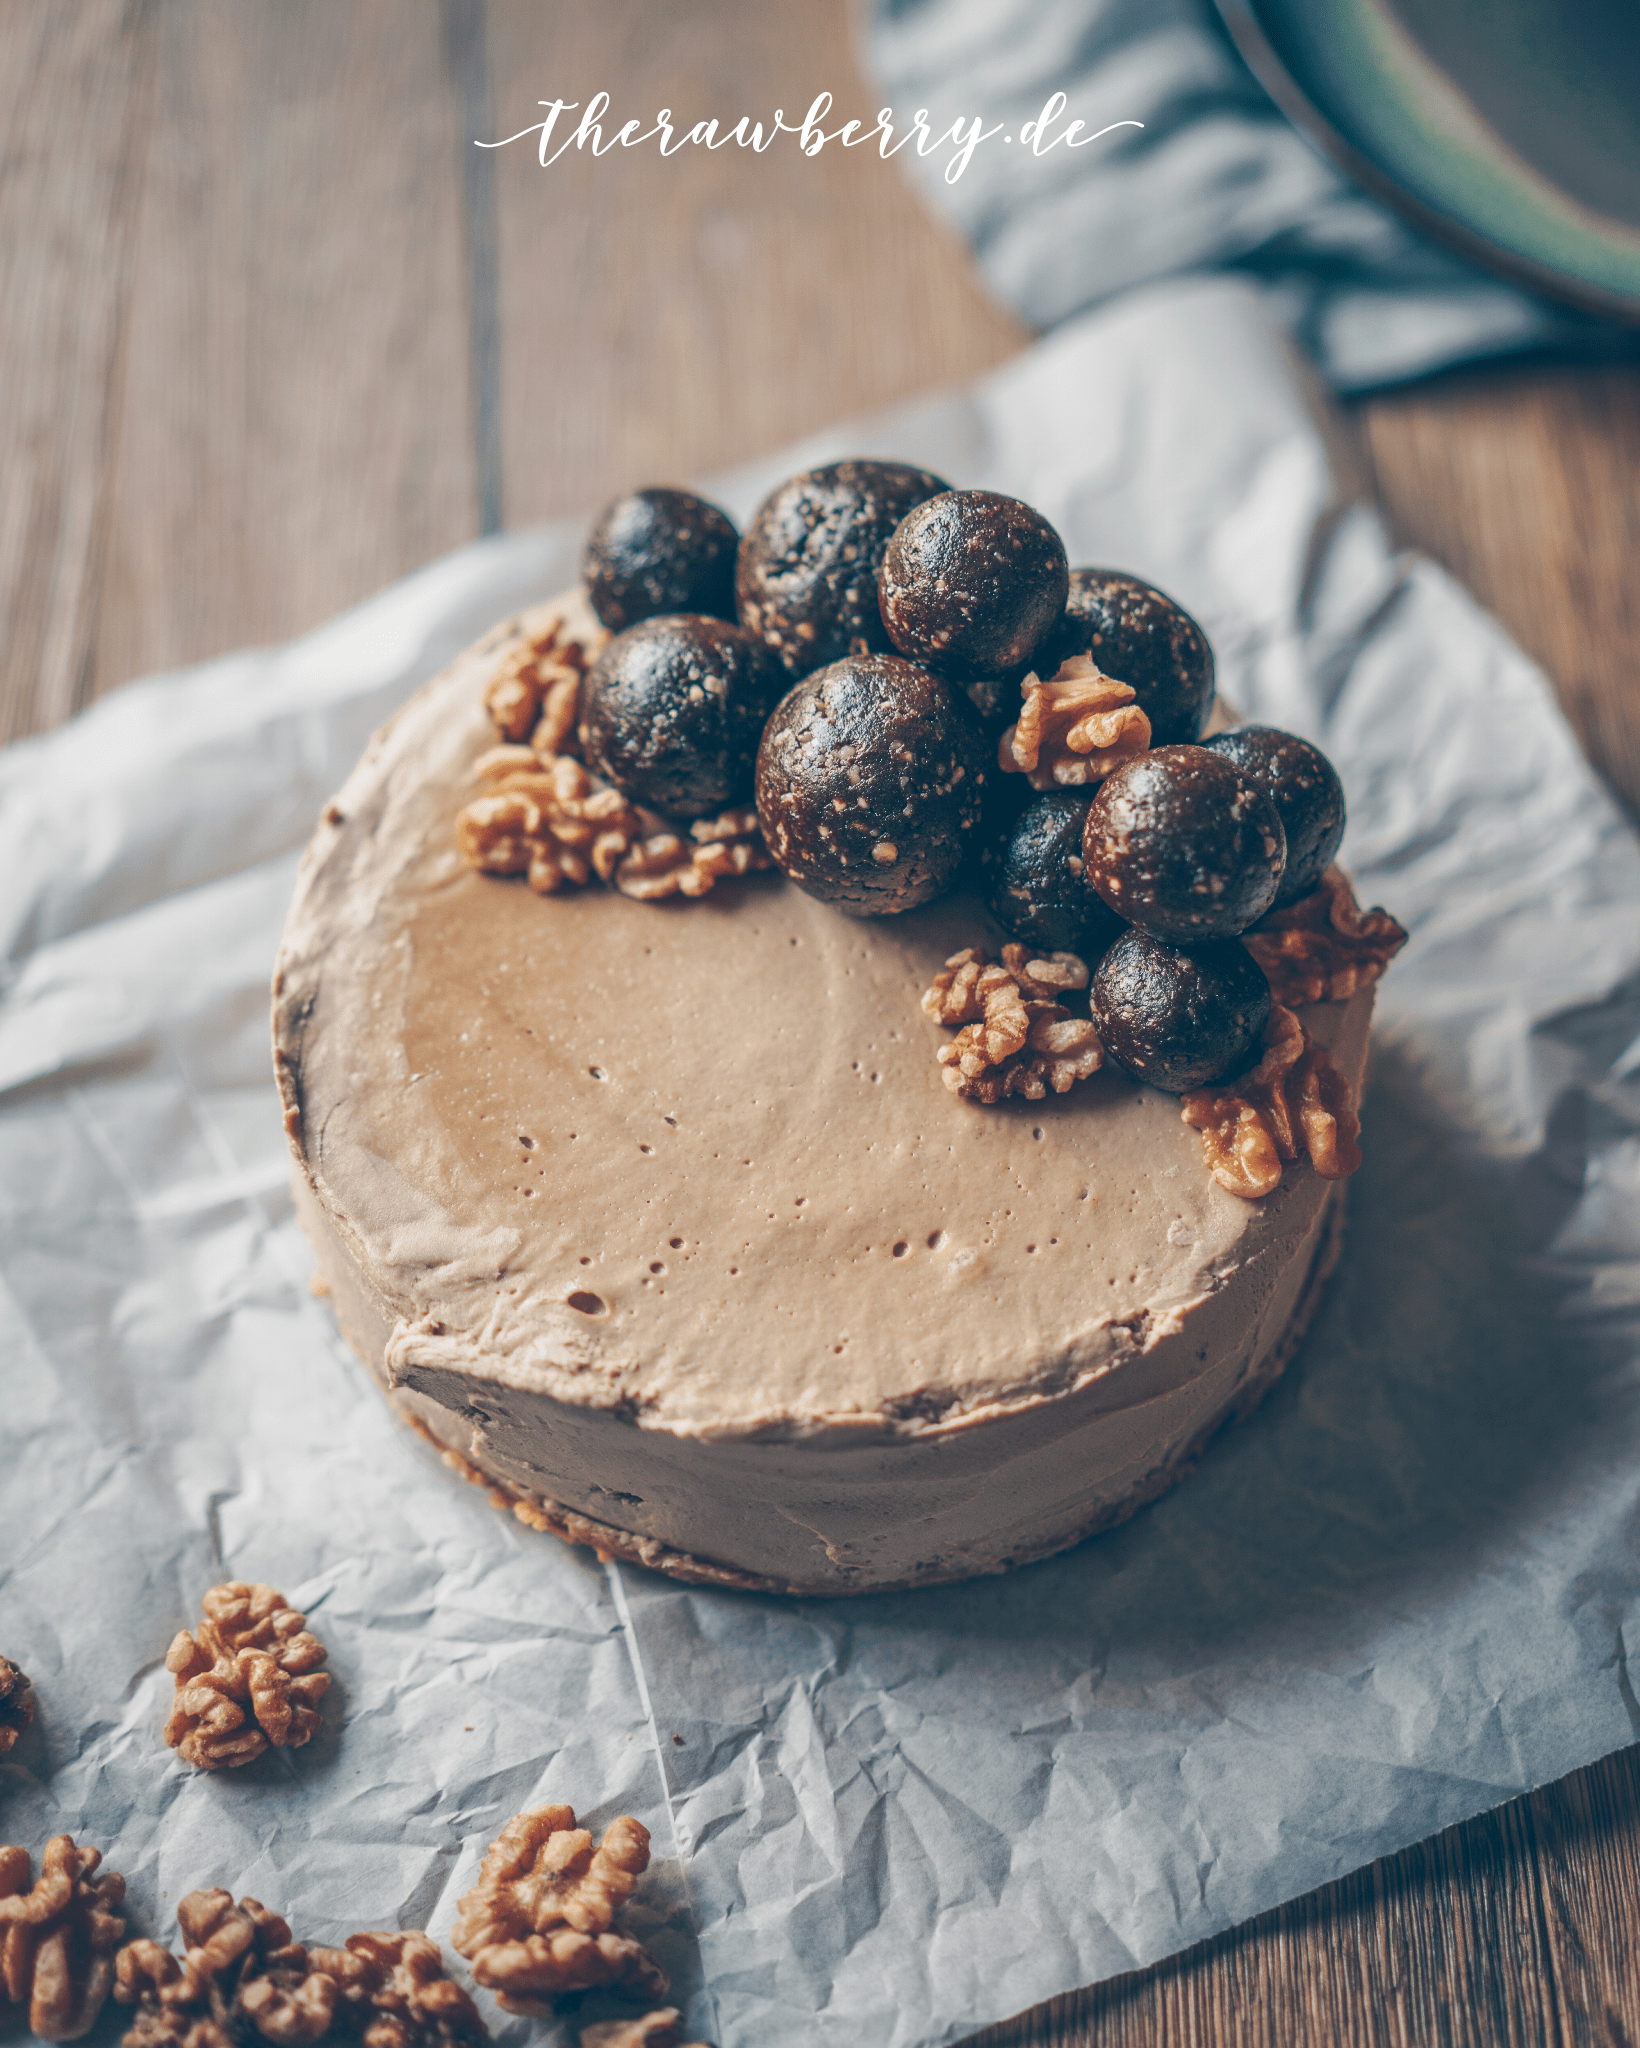 Laktose Und Glutenfreier Kuchen No Bake All Vegan Latte Macchiato Cheesecake Gf Sf The Rawberry